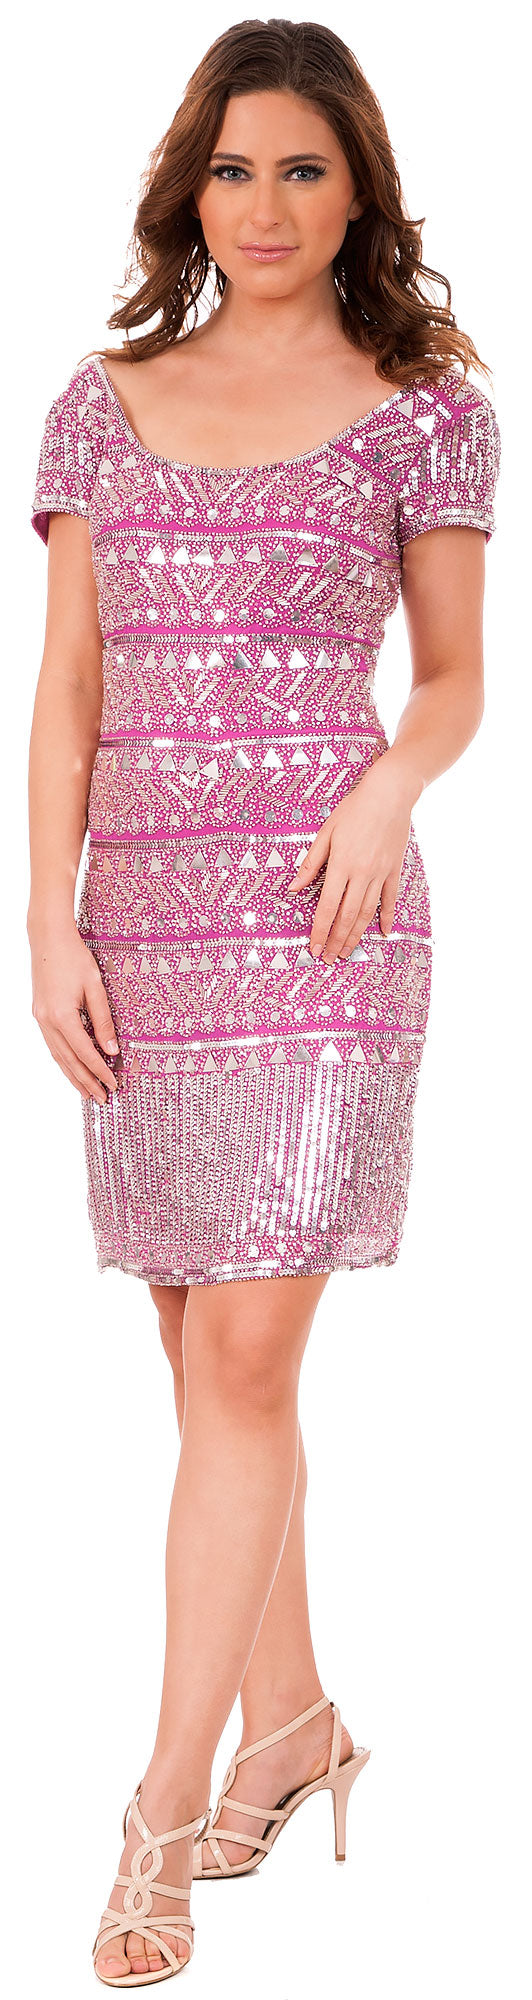 Image of Fully Sequined Short Sleeves Prom Homecoming Dress in Fuchsia/Silver